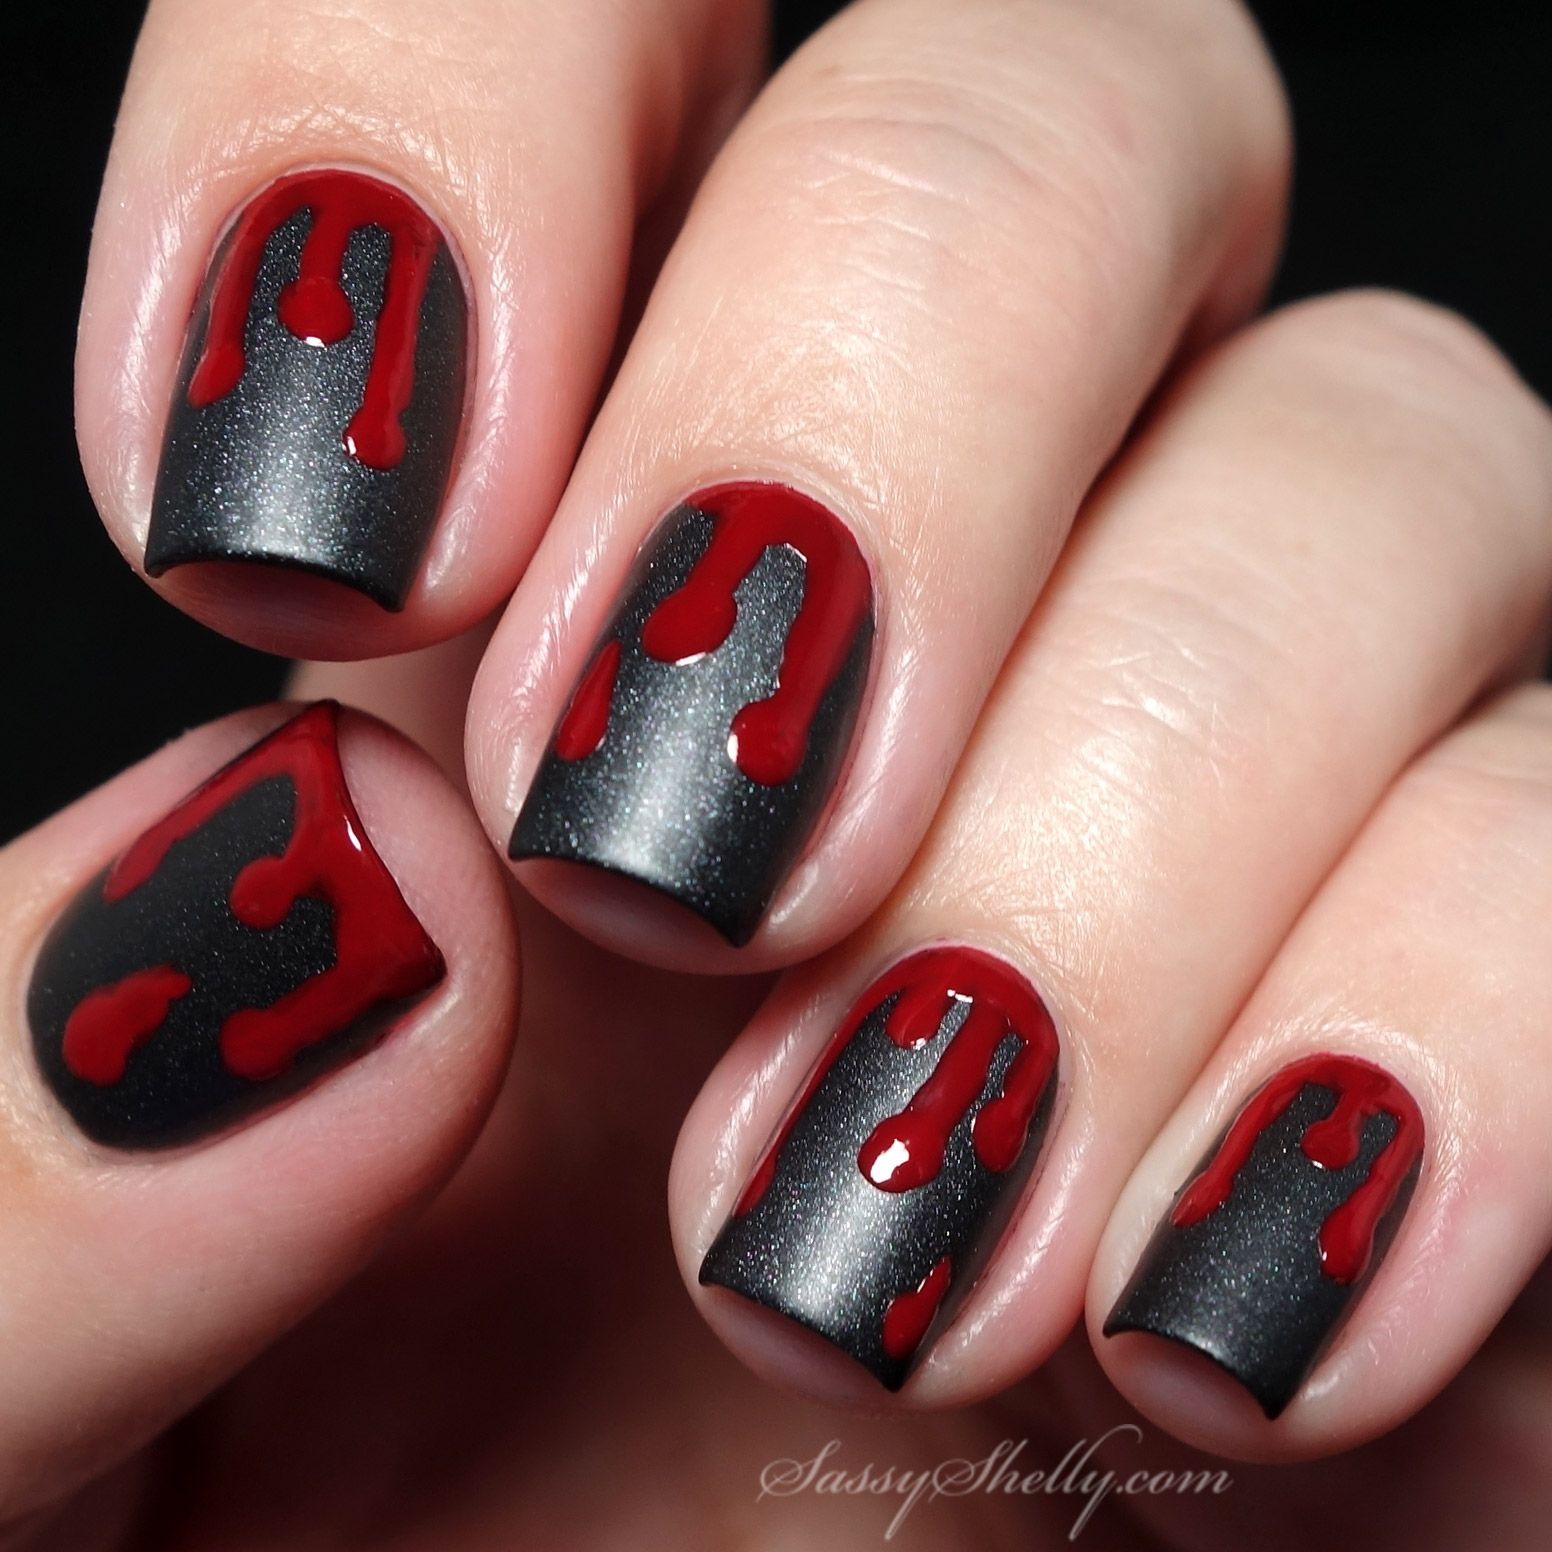 Pin on 4 the luv of nail art!